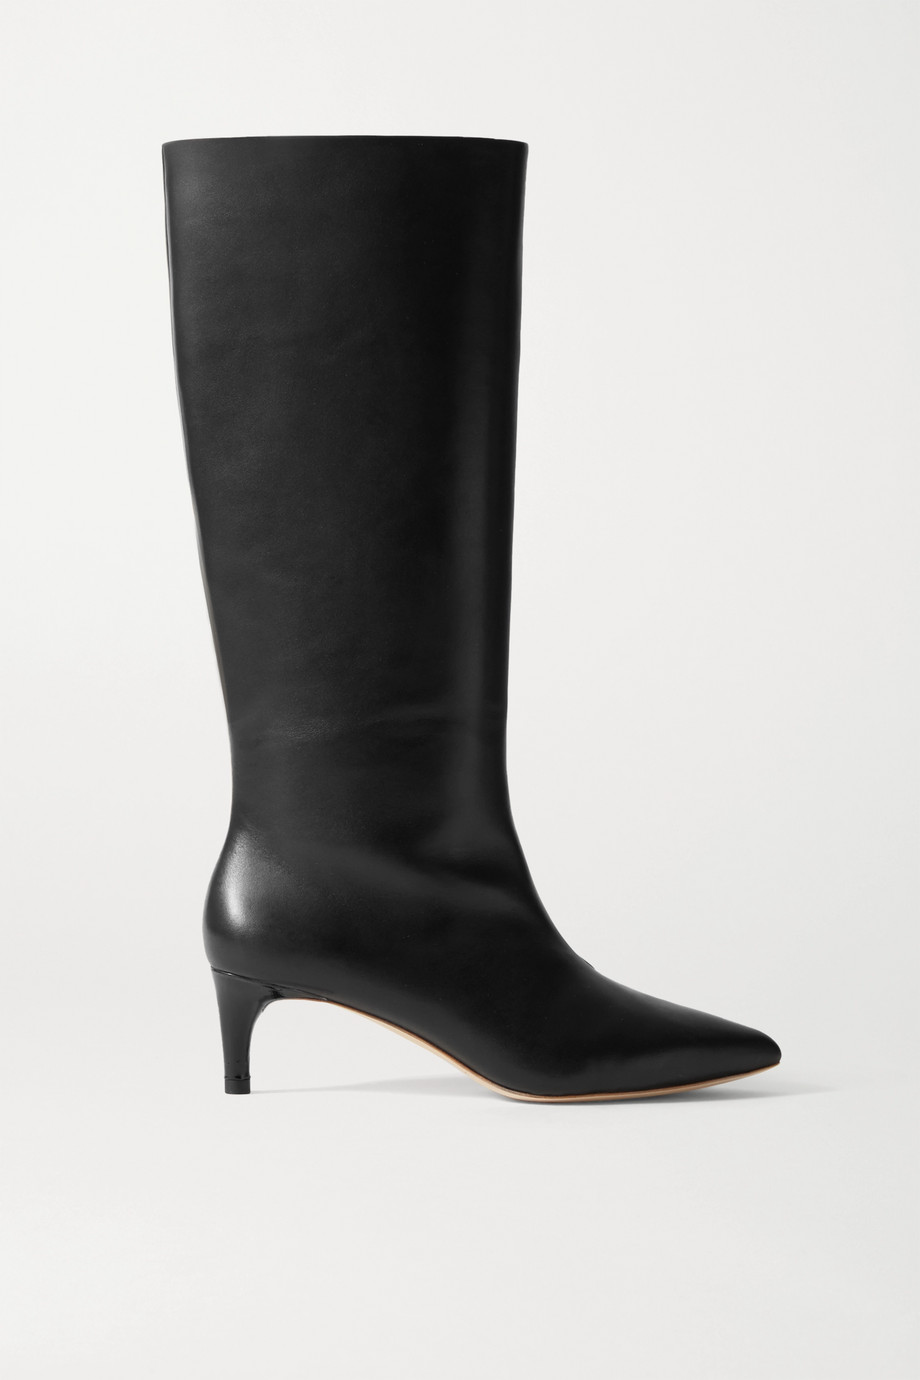 Loeffler Randall Gloria leather knee boots